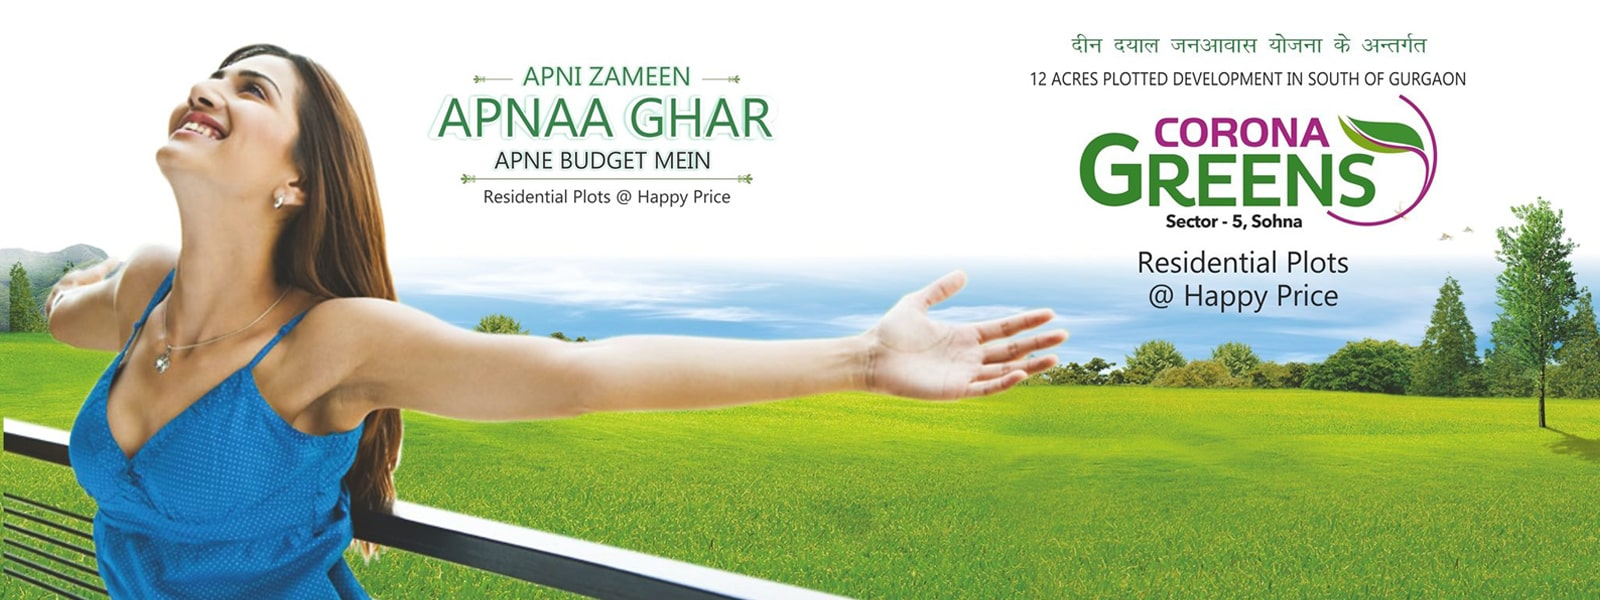 Corona Greens Residential Plots